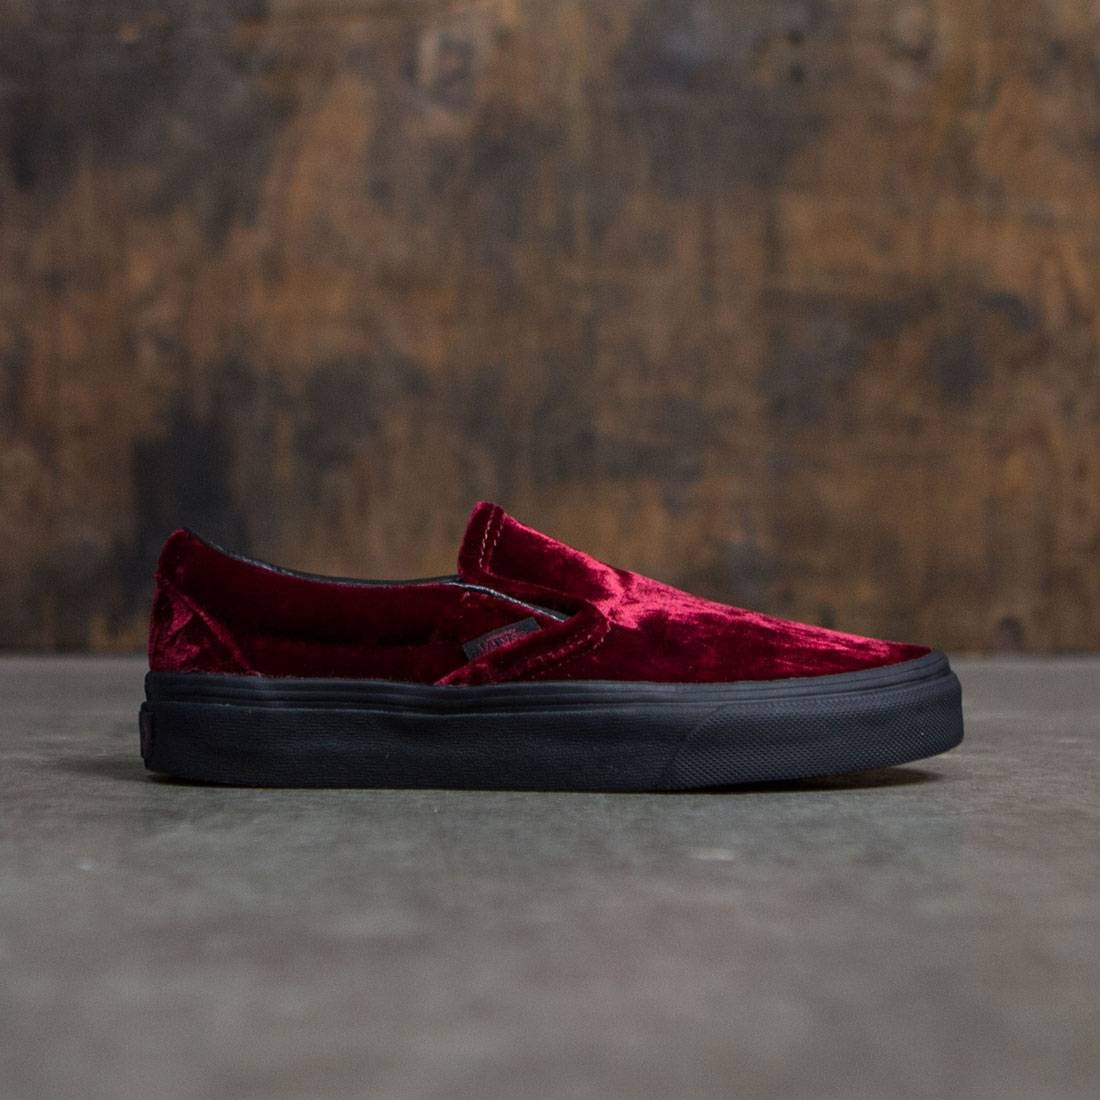 5601c370fd0d4a Vans Women Classic Slip-On - Velvet red black